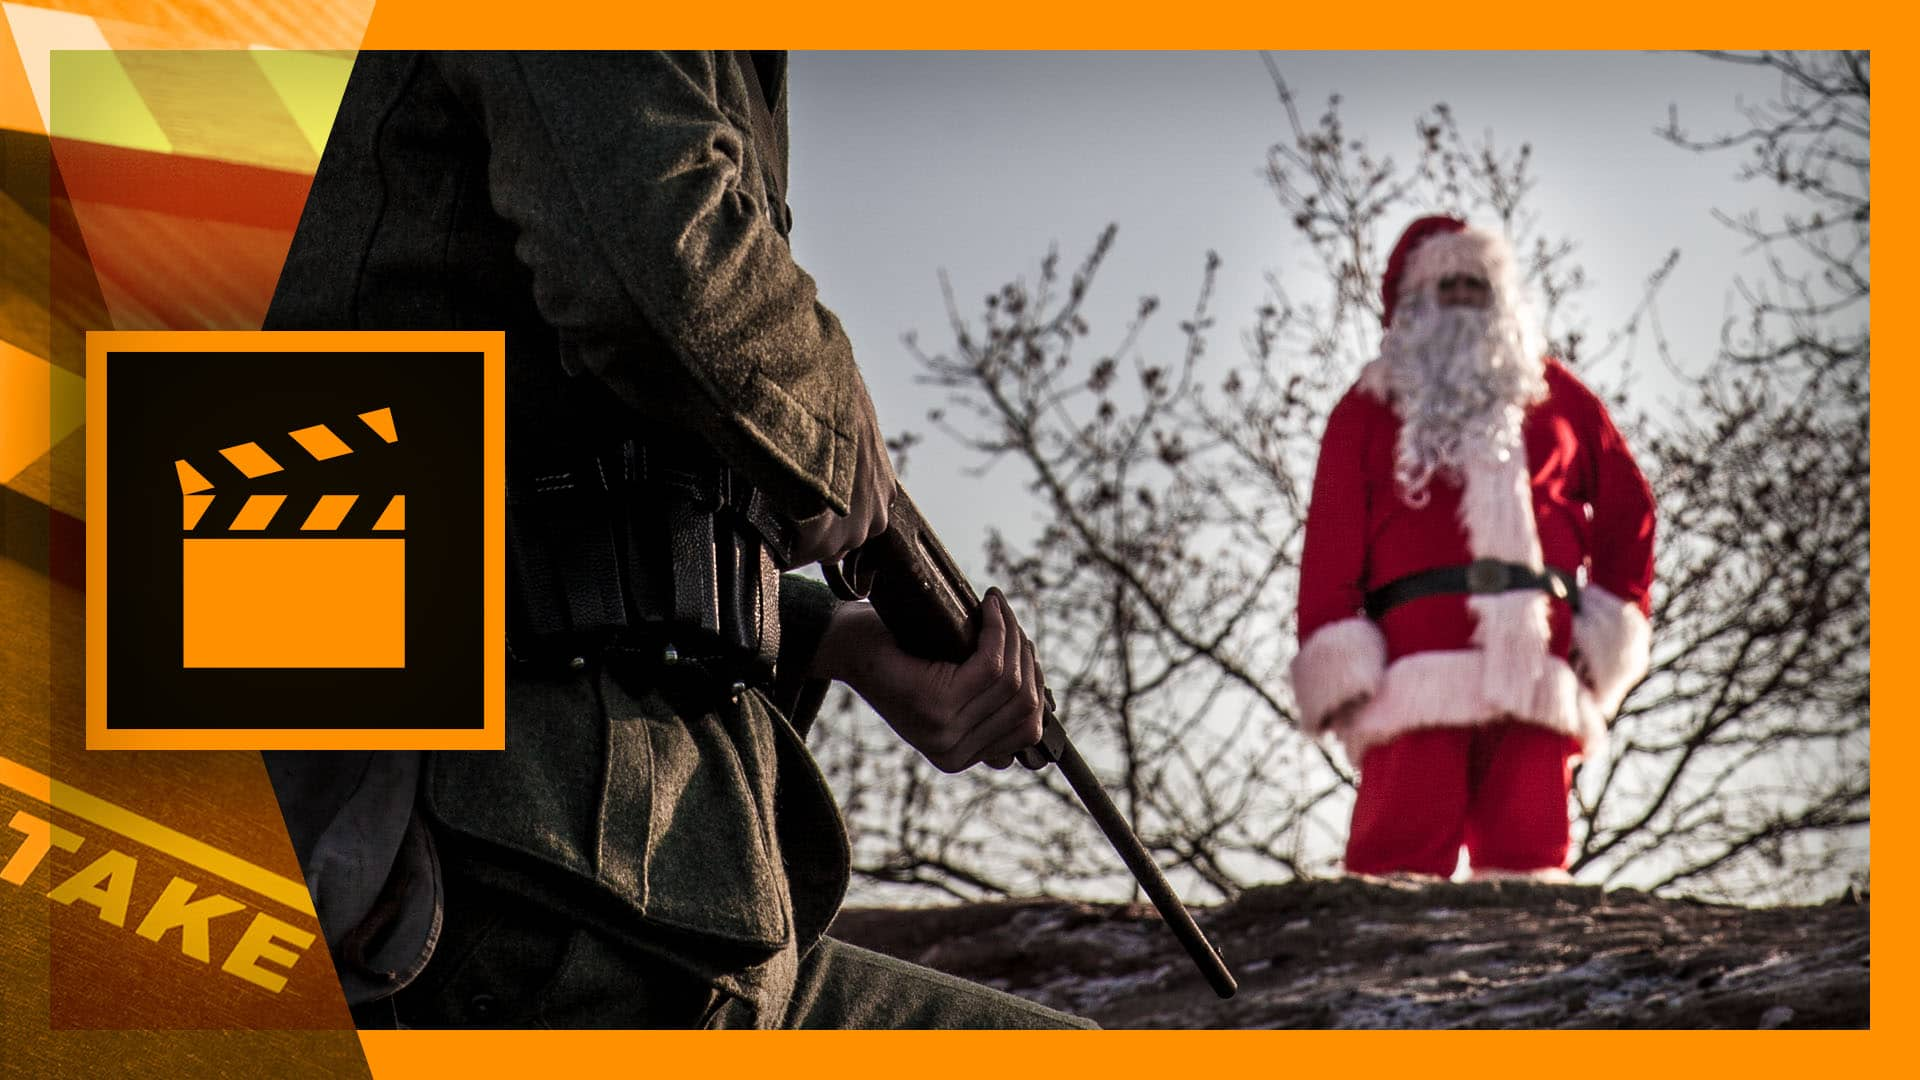 What if Santa had to work during the World War